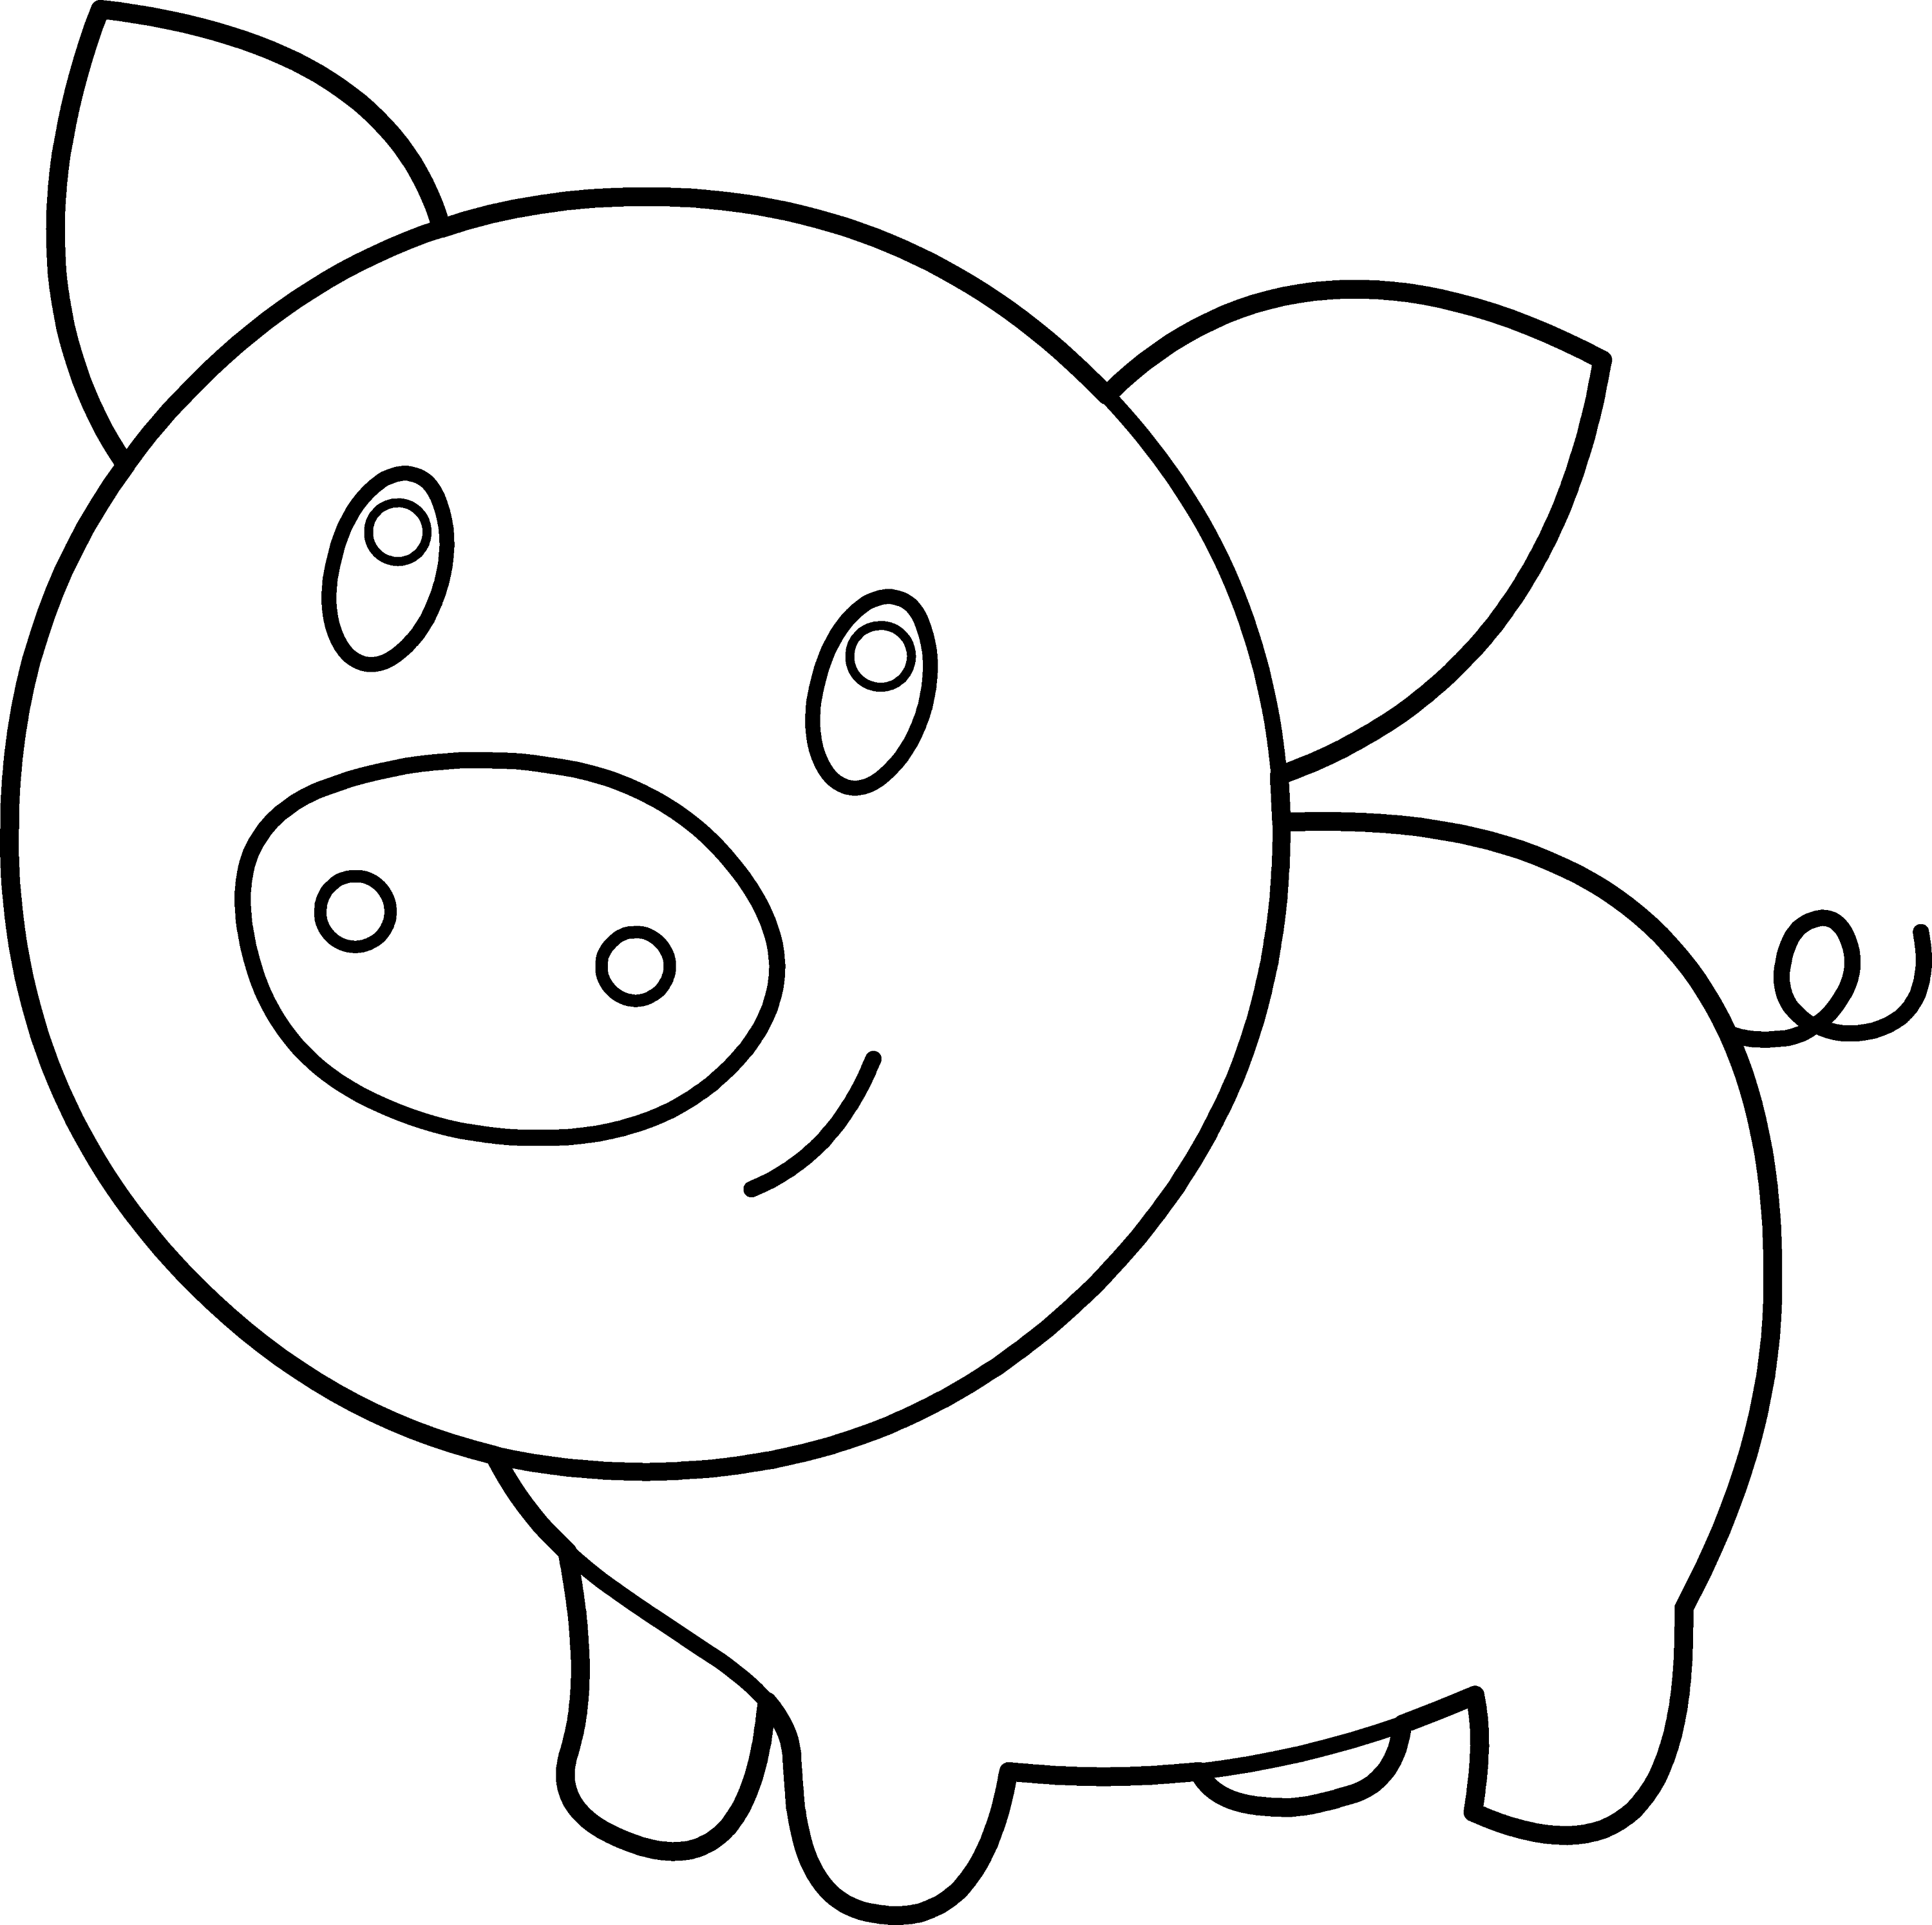 coloring pictures of pigs coloring page pig animal coloring pages 3 of coloring pictures pigs